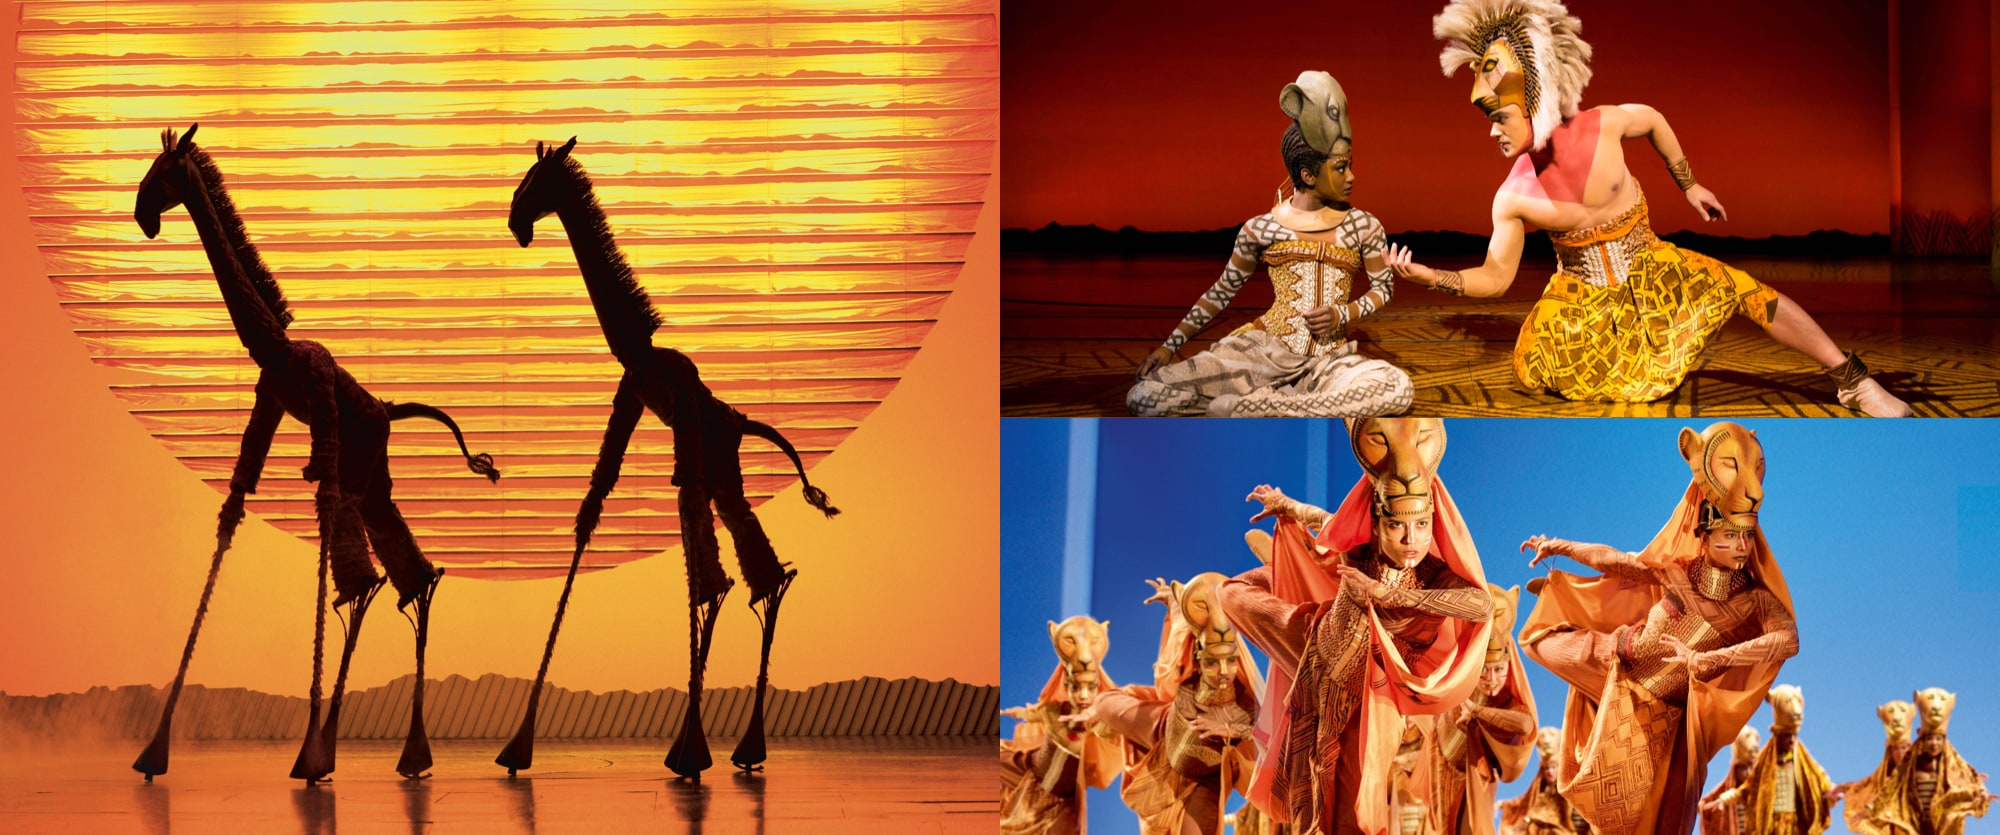 Stills from The Lion King stage show featuring giraffes, Simba, Nala and the Lionesses hunt